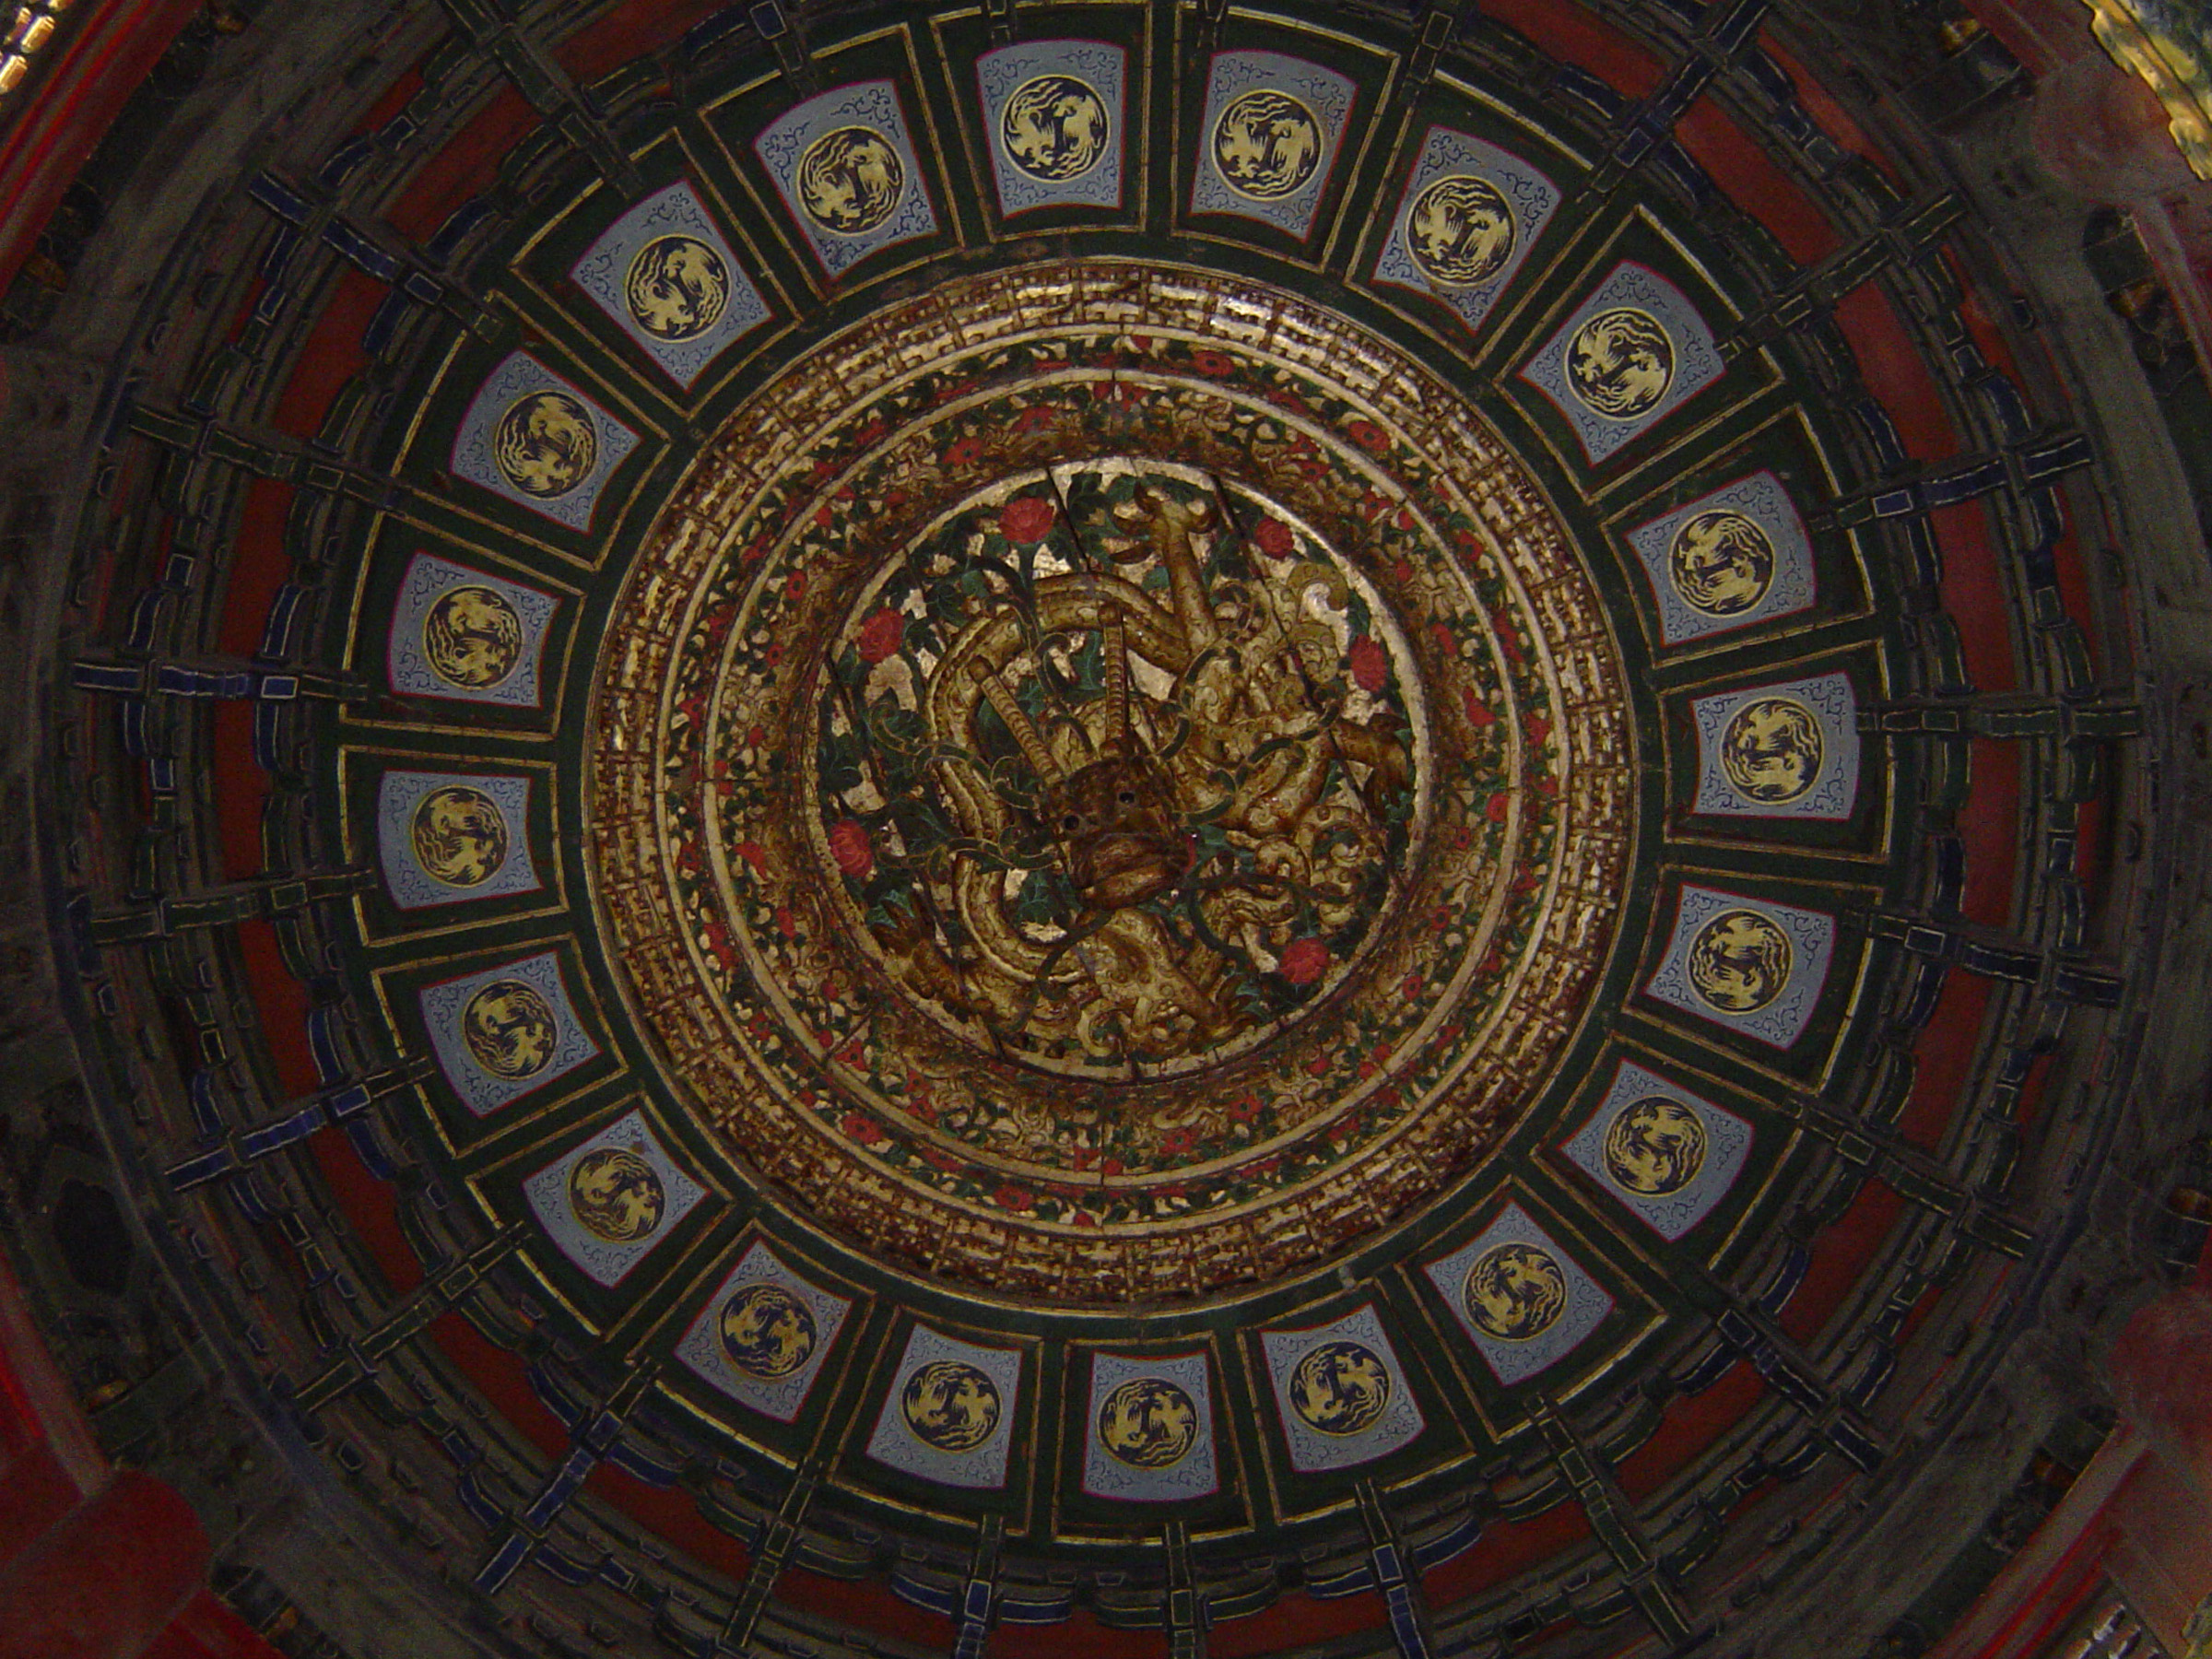 Circular Artistic Ceiling Design of Vintage Temple of Heaven in Beijing China.